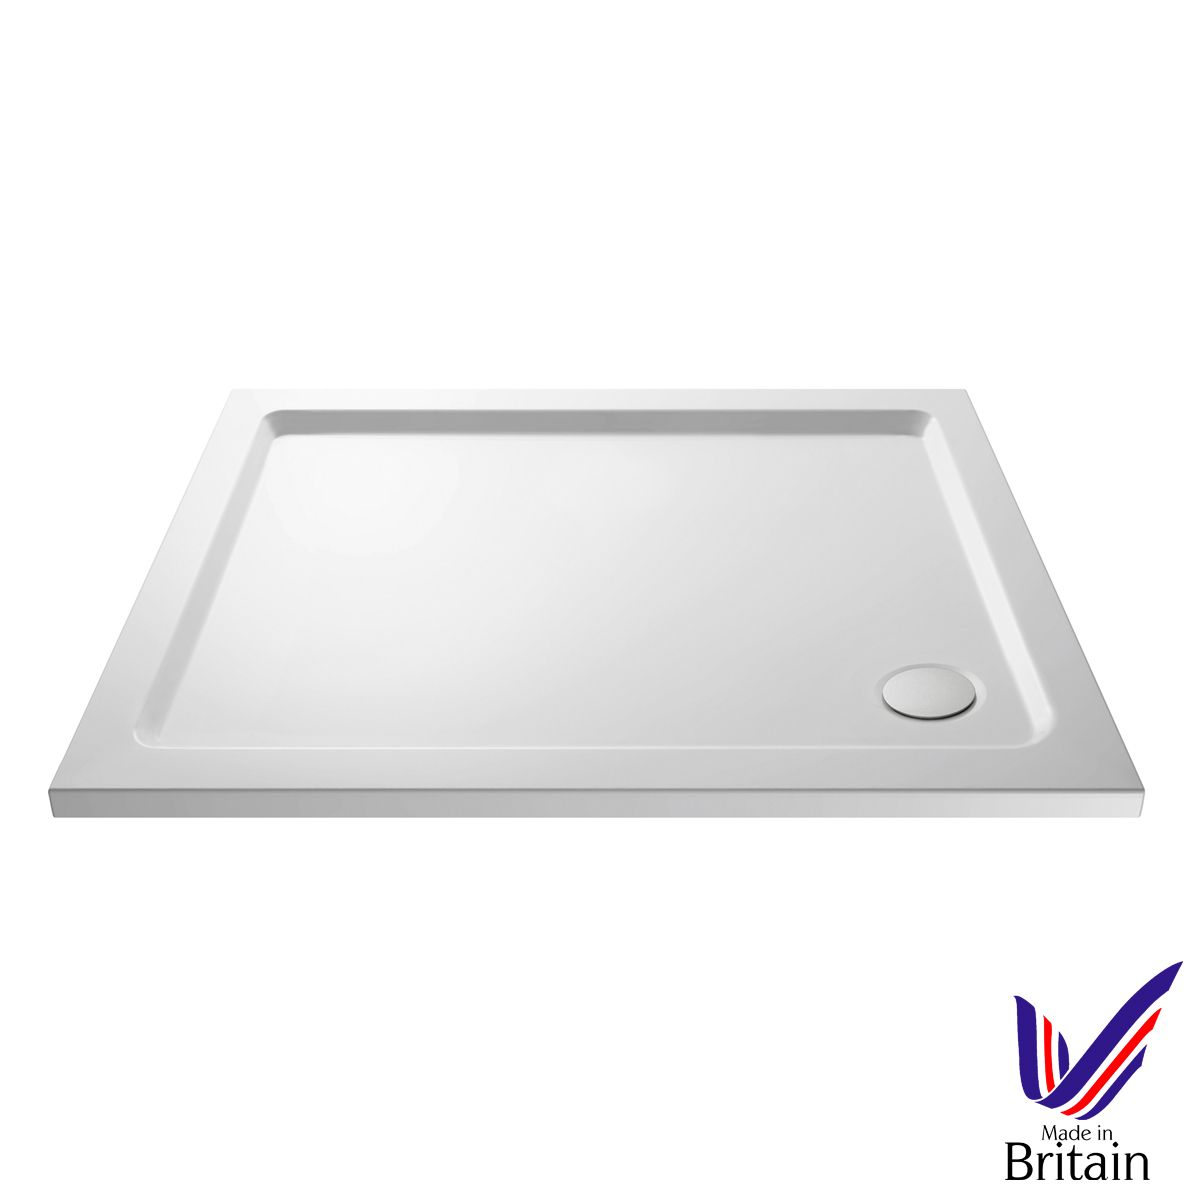 1000 x 760 Shower Tray Rectangular Low Profile by Pearlstone